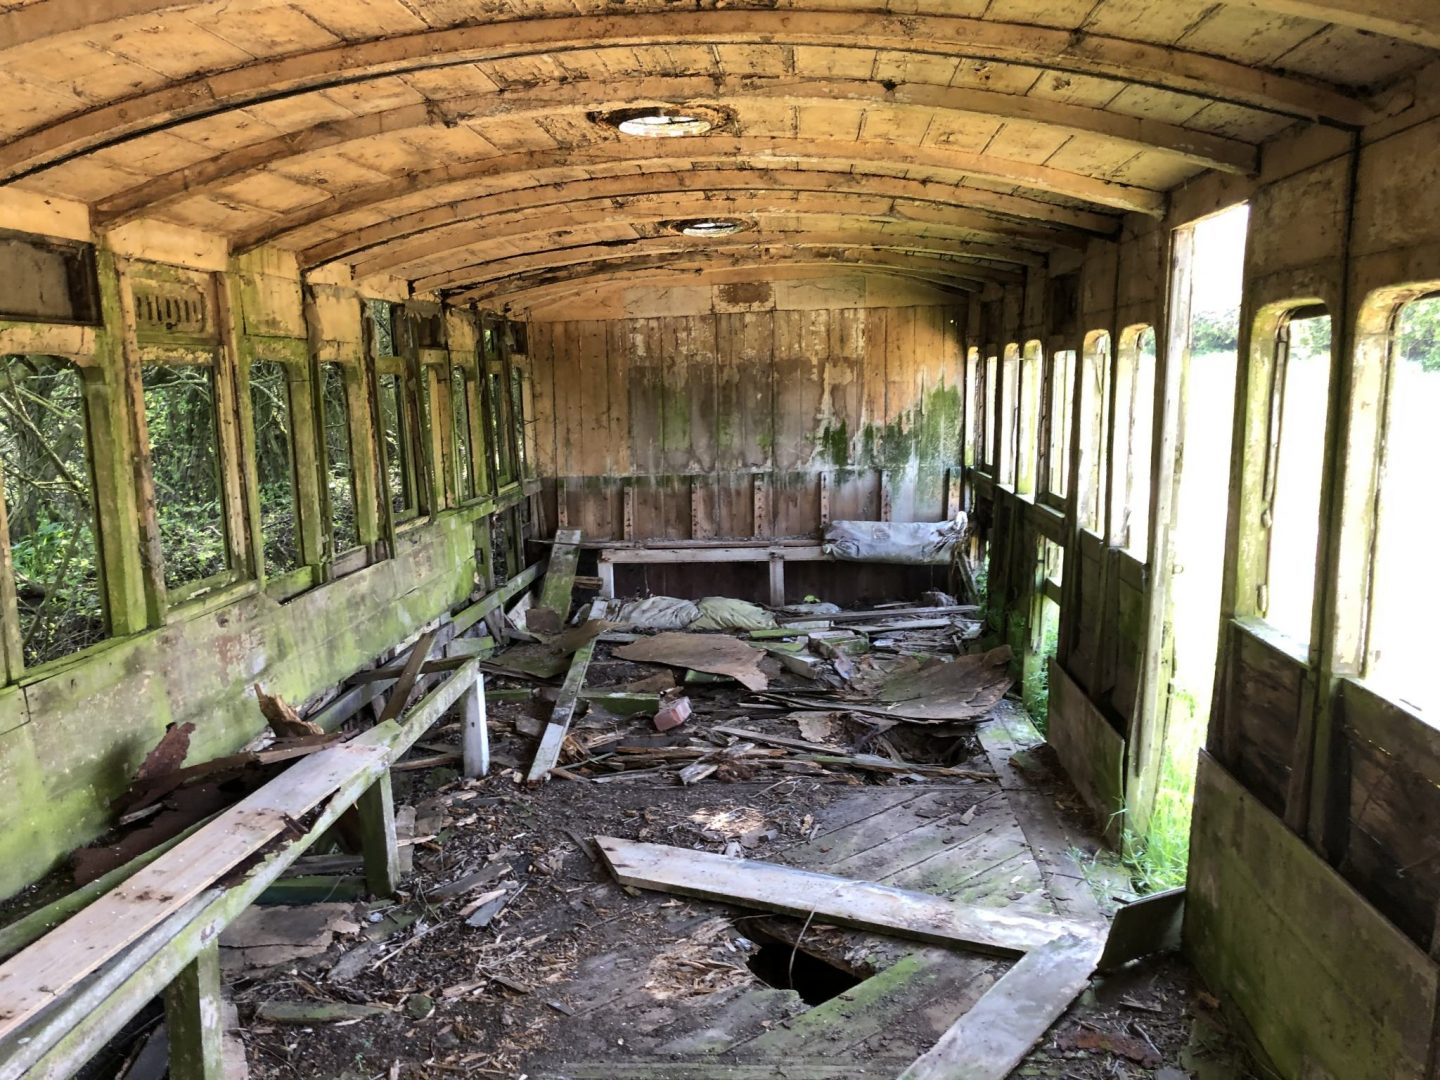 The interior of Ashdon Halt Carriage taken in April 2019